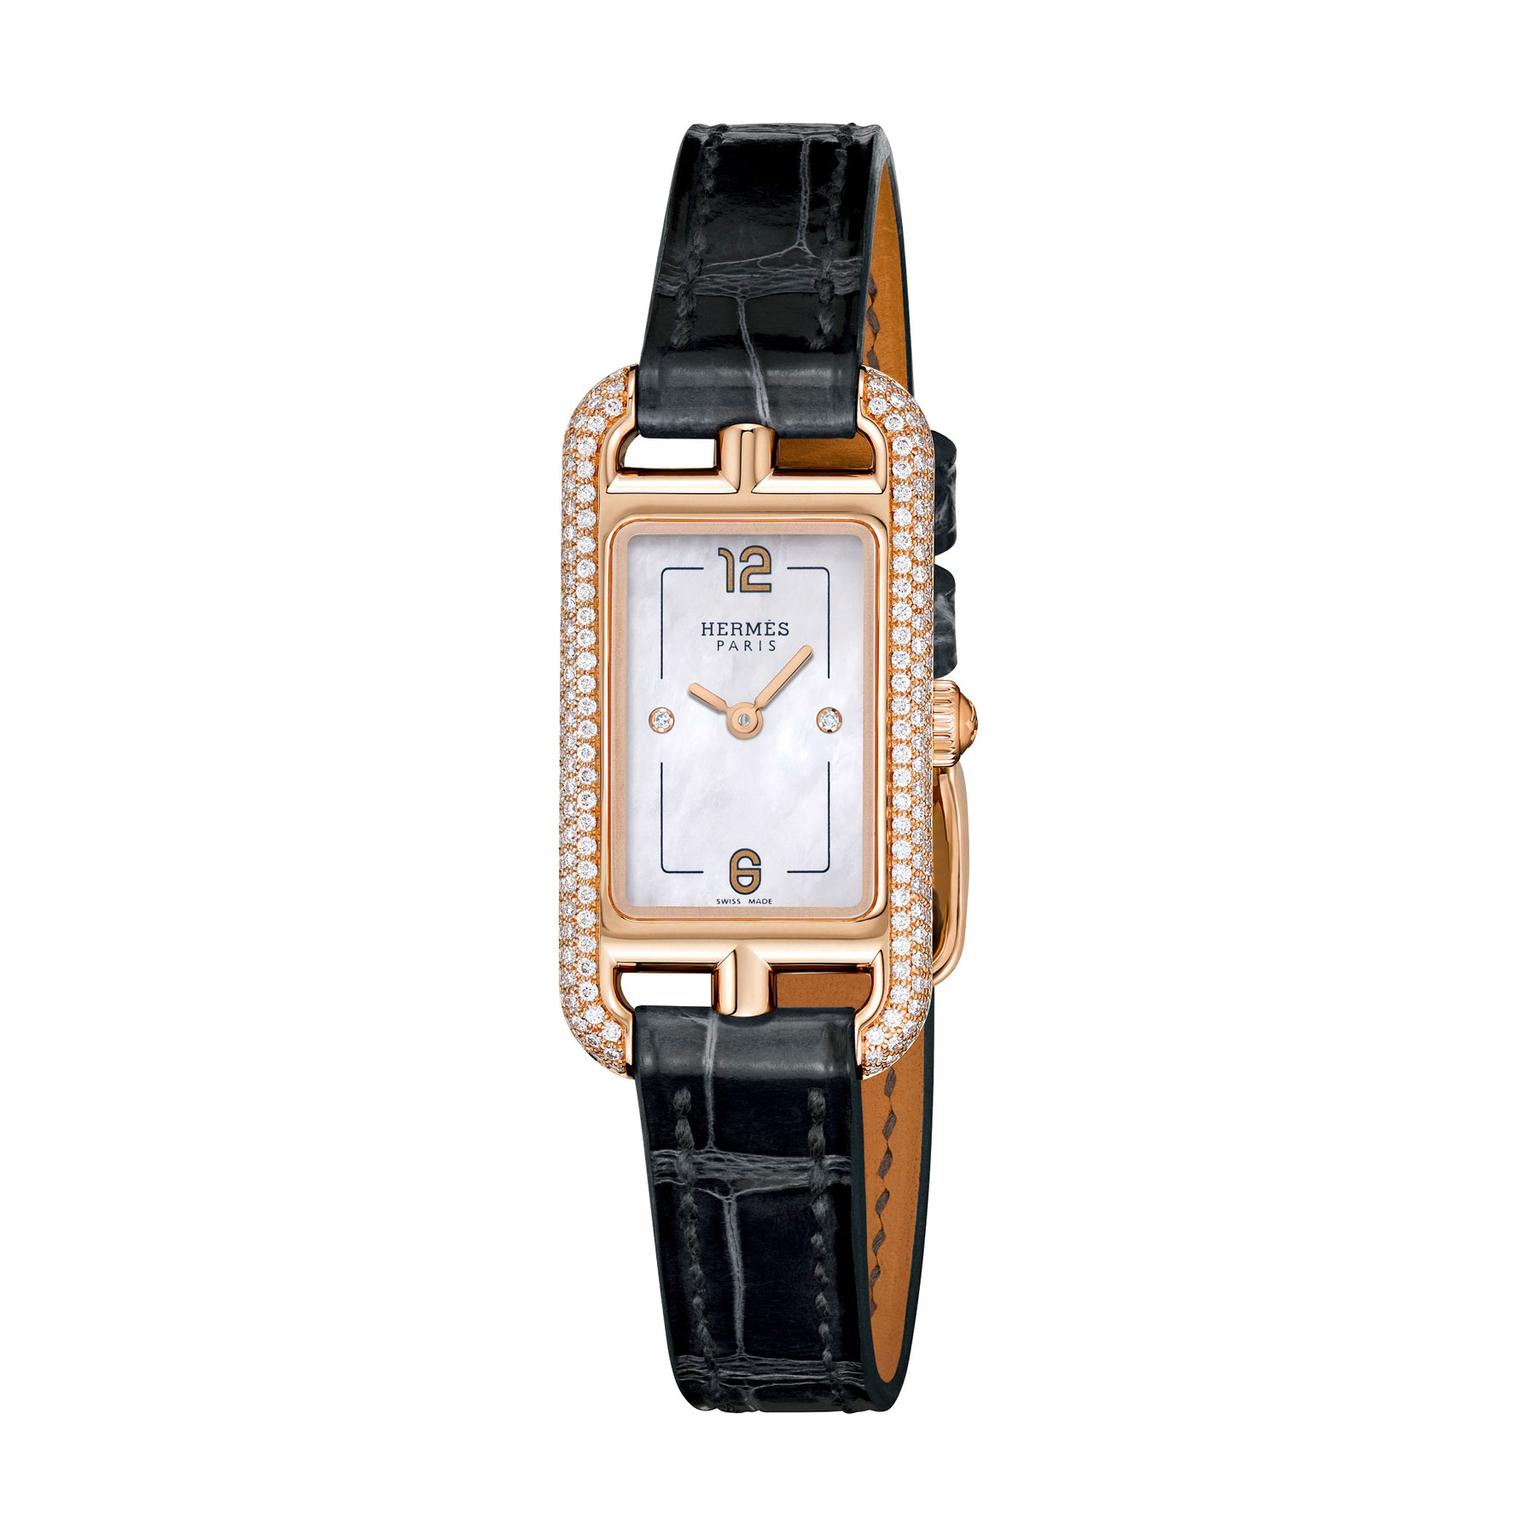 Hermes Nantucket Très Petit watch with diamonds